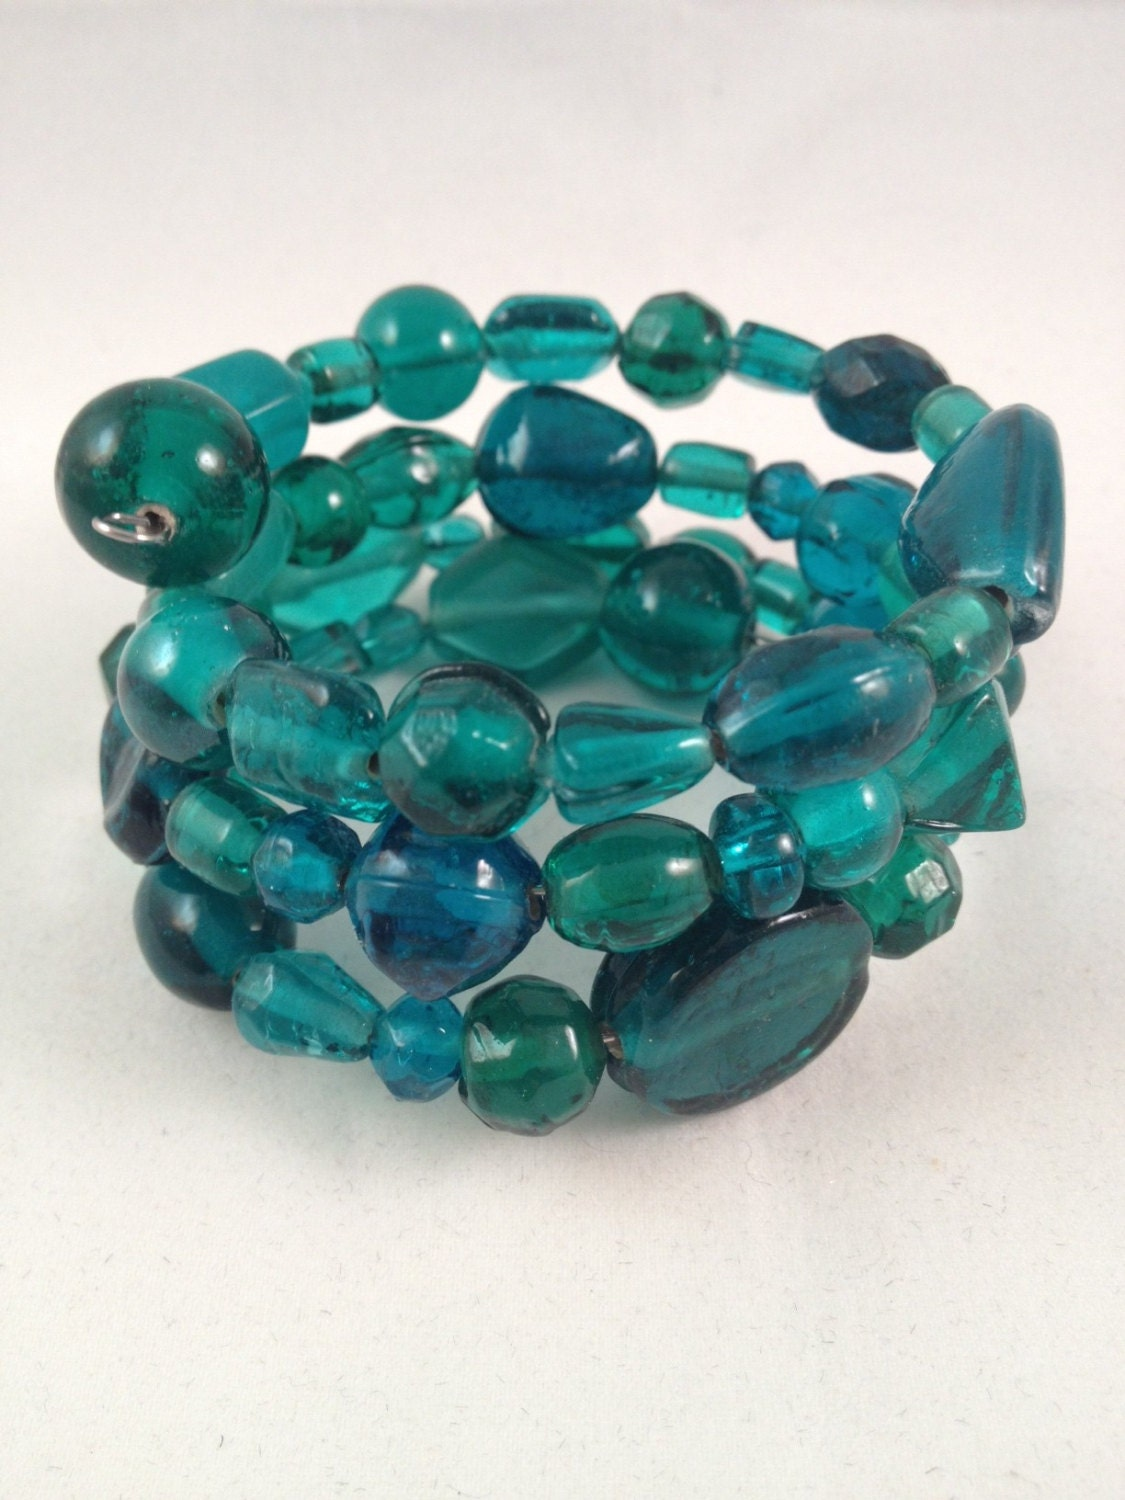 Gorgeous Green/Blue Glass Bracelet with FREE matching earrings - IvyLouJewelry